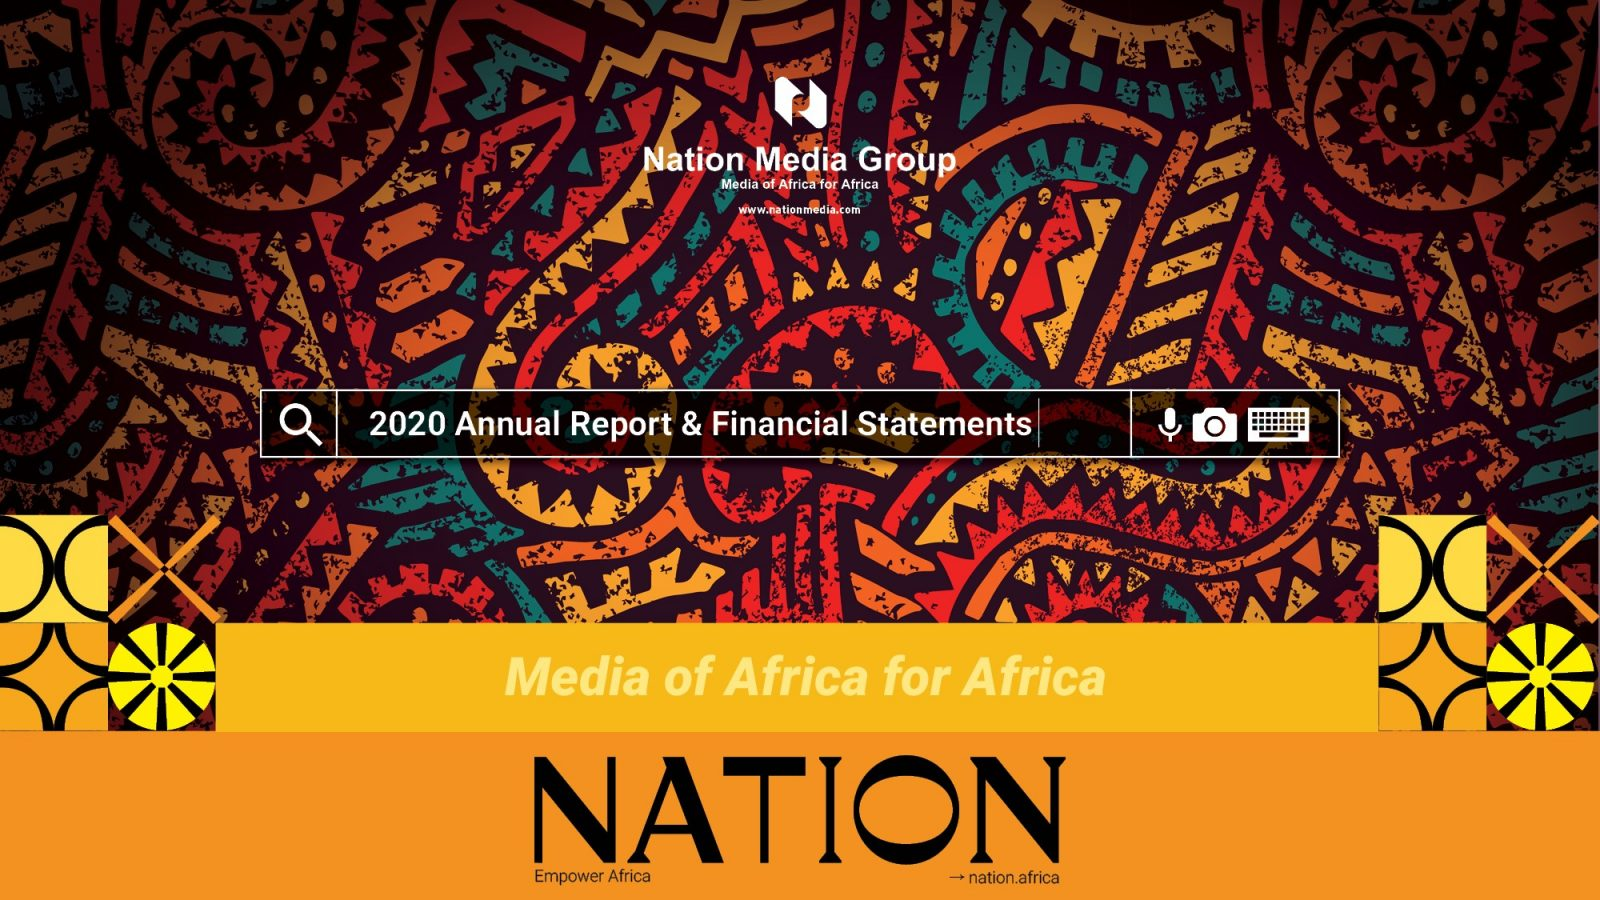 NMG 2020 Annual Report & Financial Statements